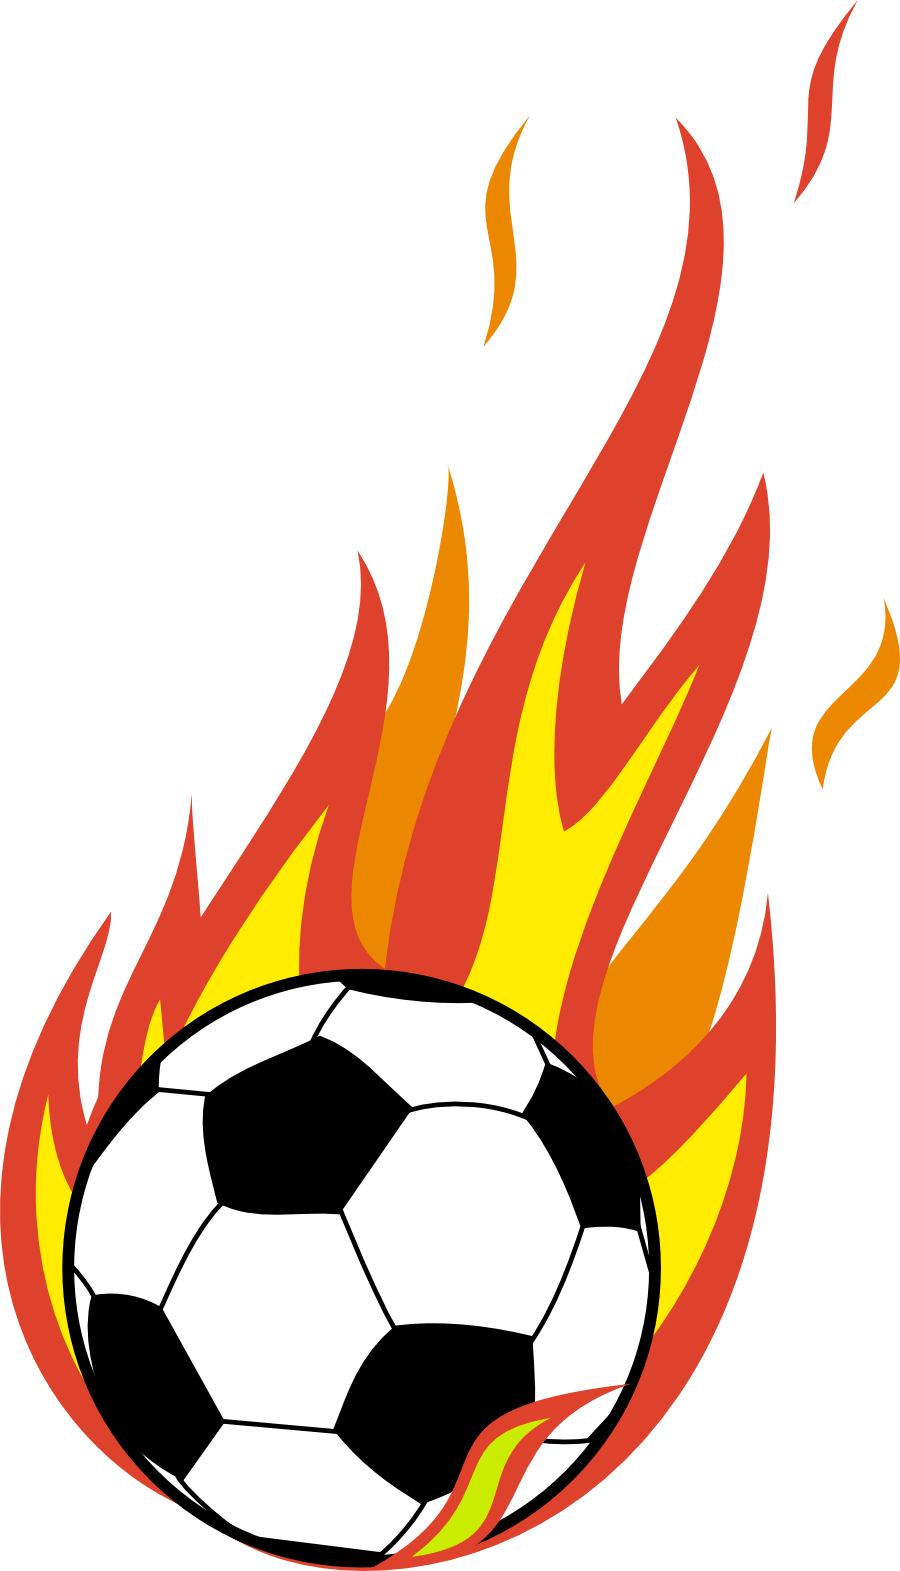 Soccer Ball With Flames Clipart   Clipart Panda - Free ...